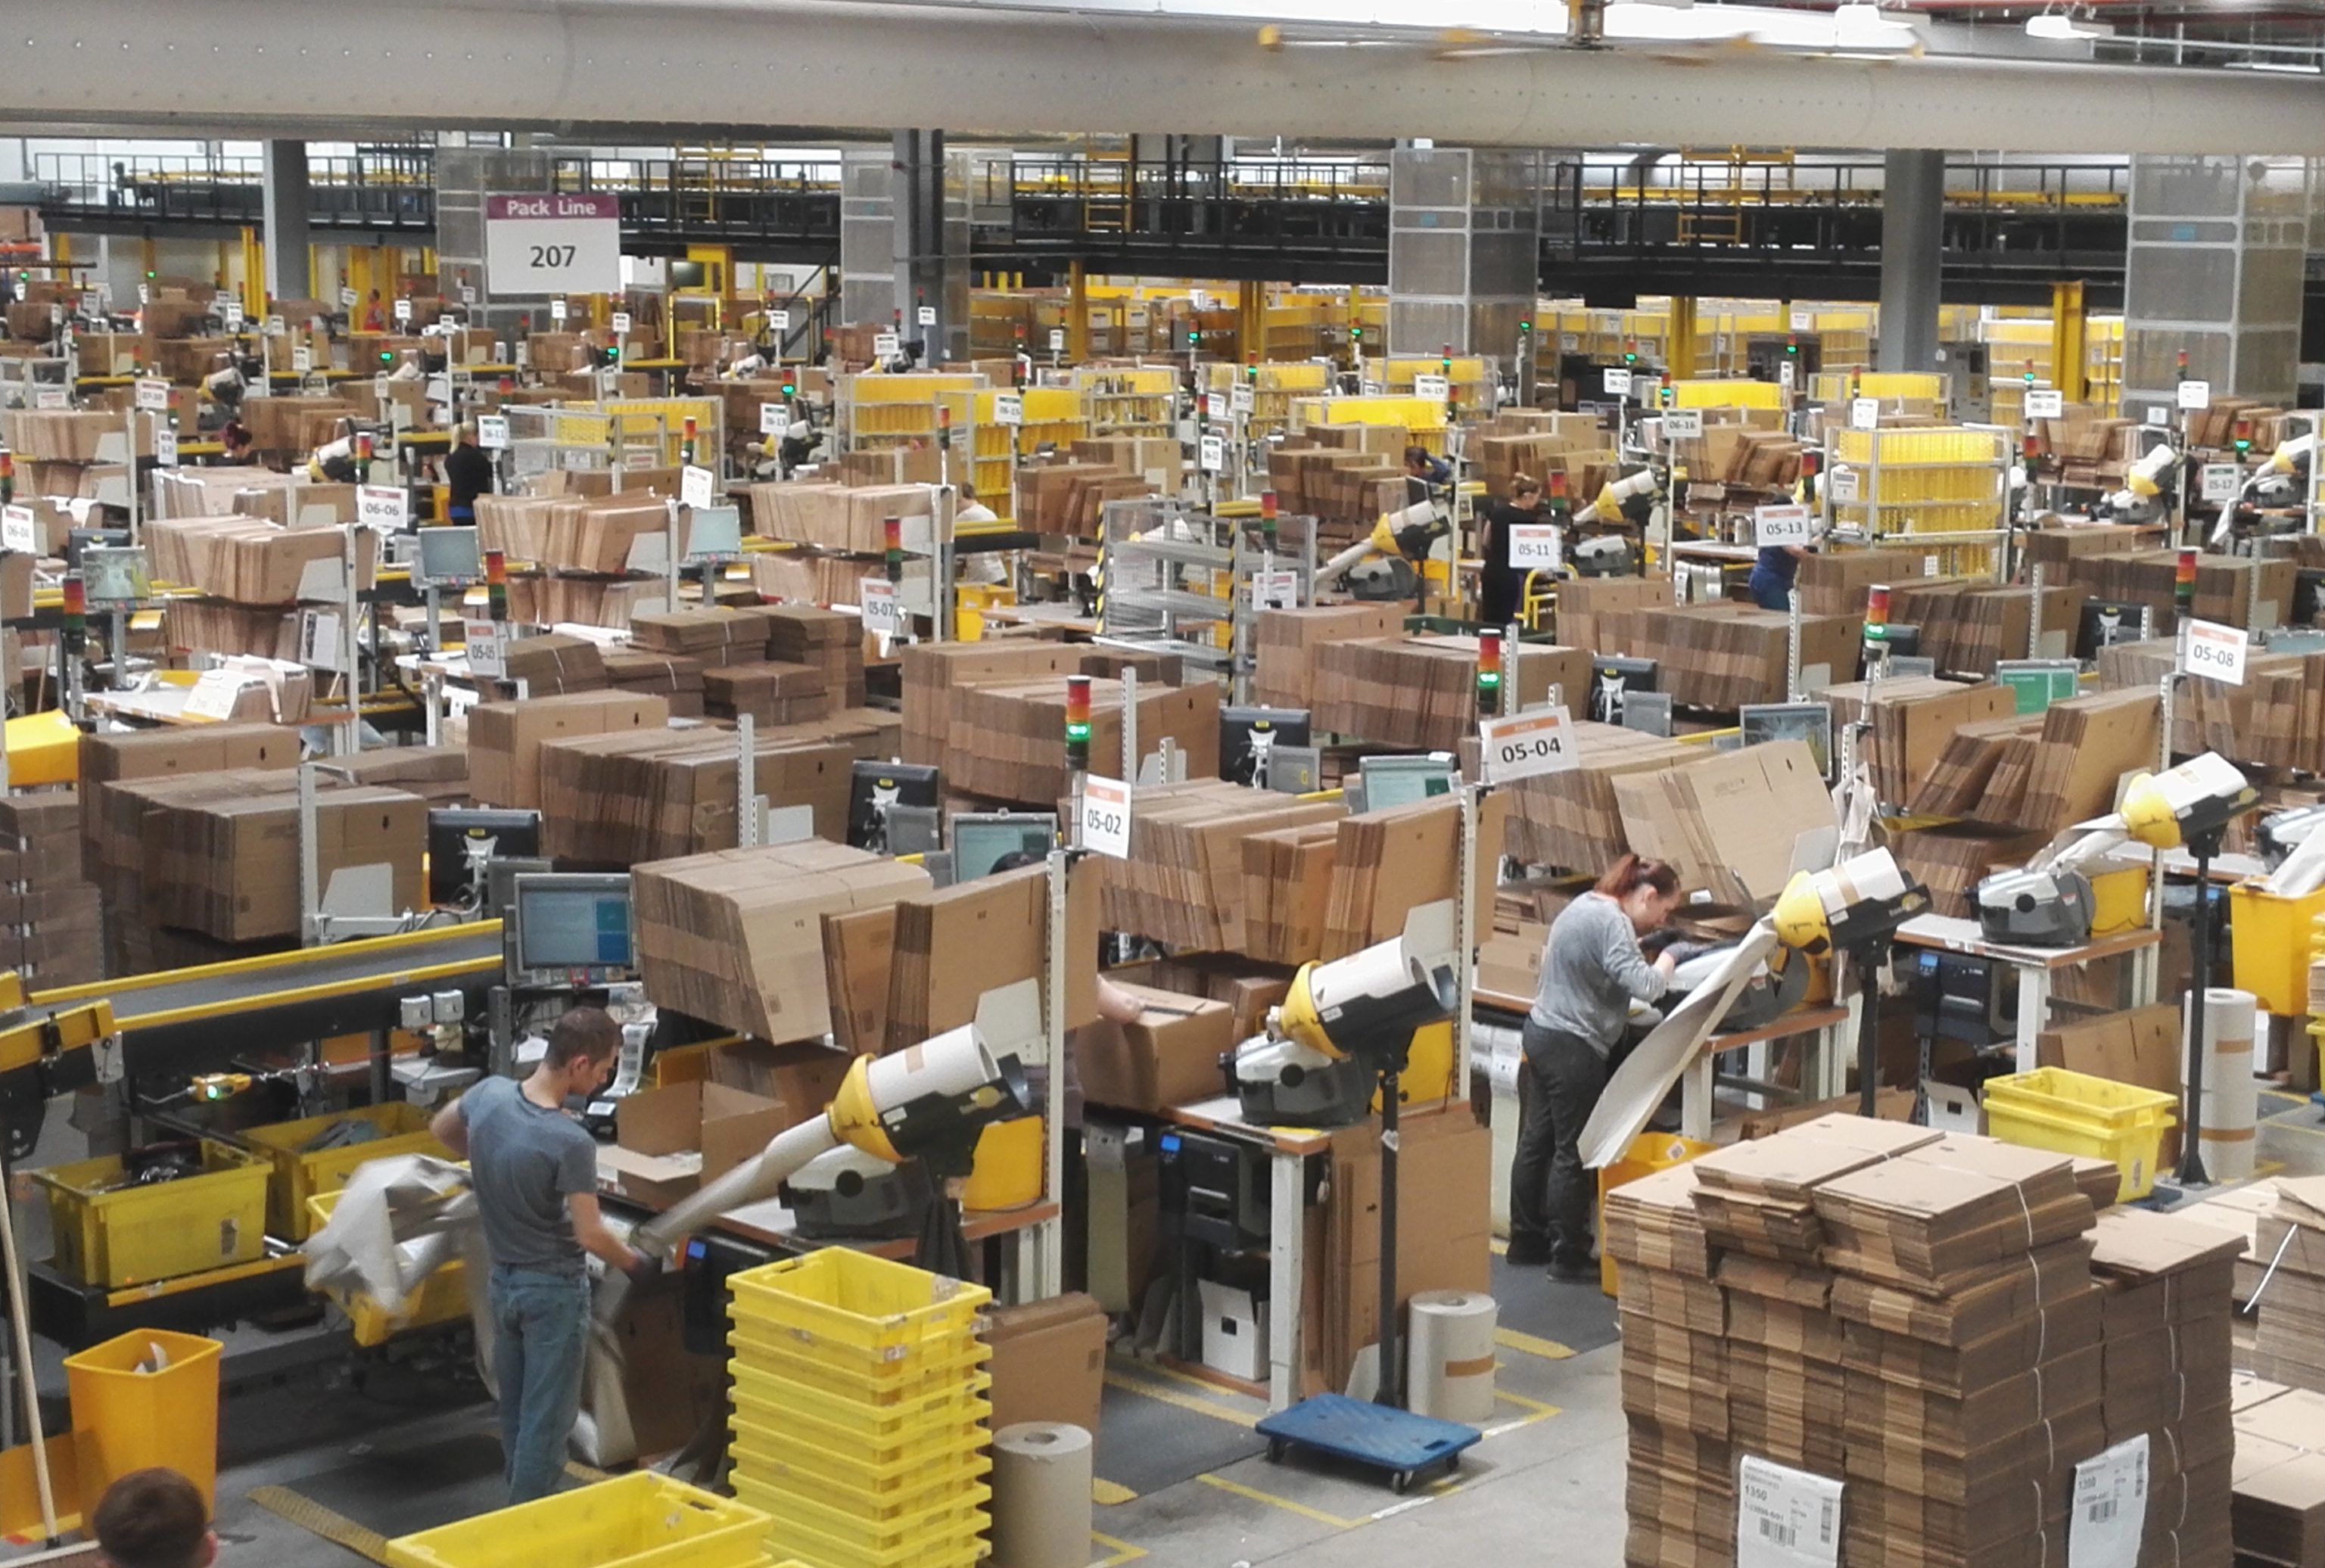 One of the main halls at Amazon's Dunfermline facility.